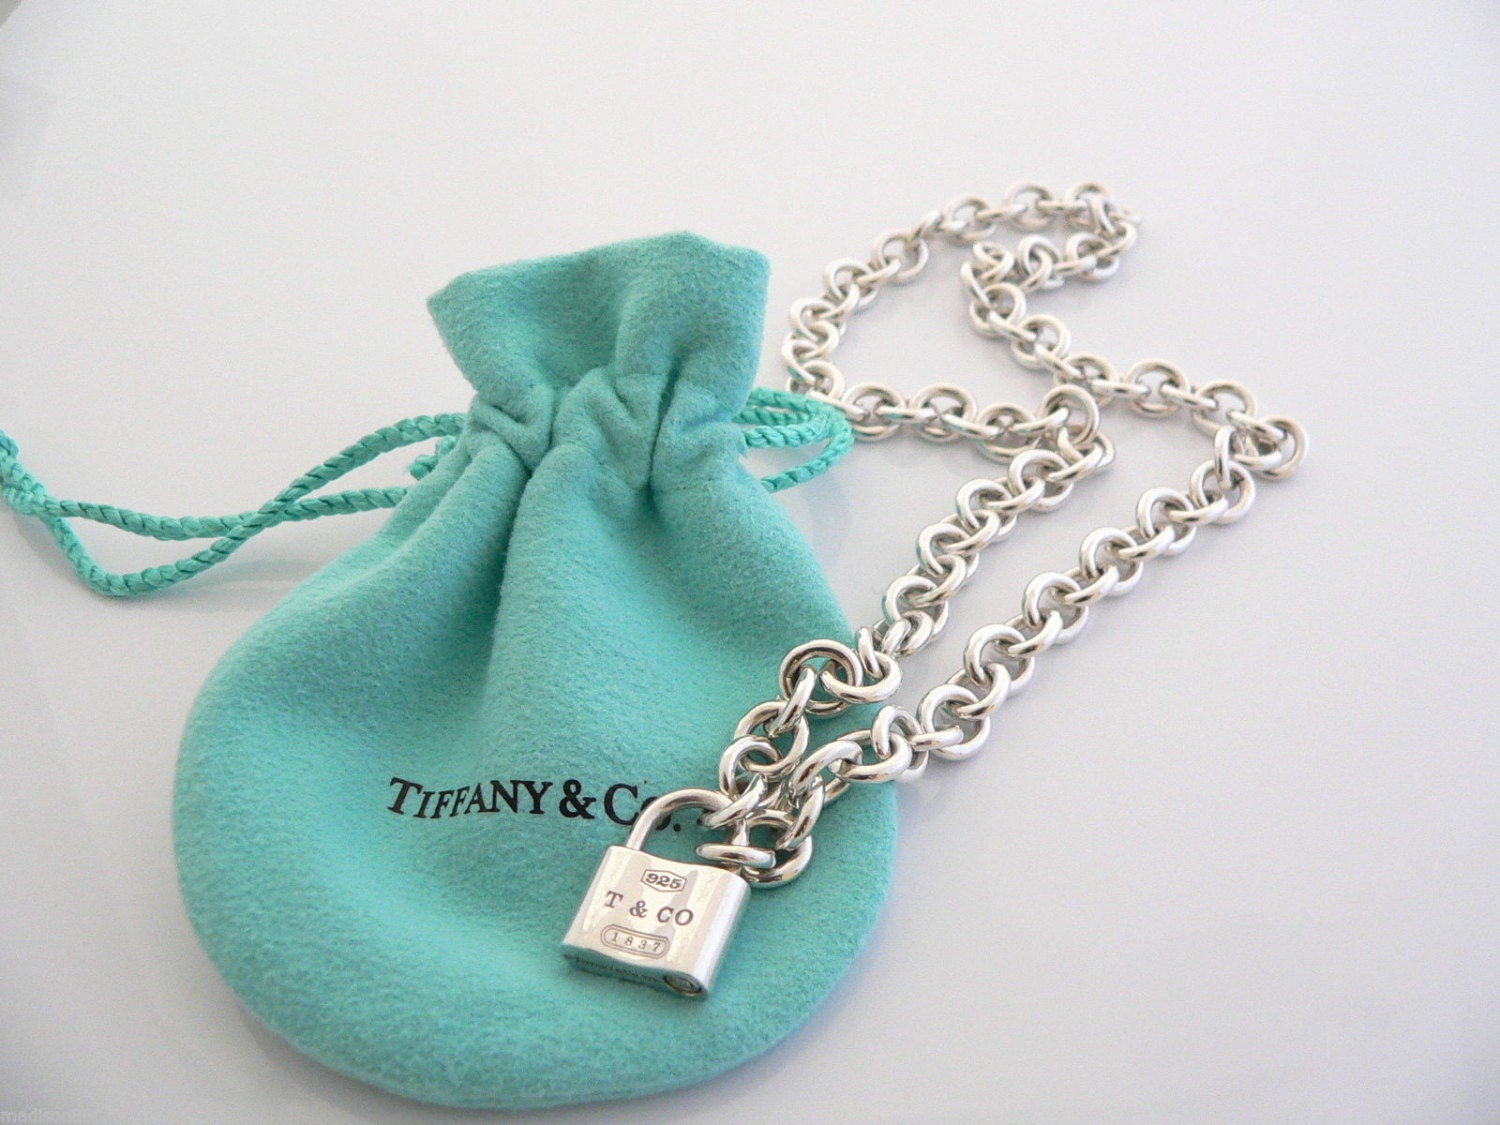 Tiffany co 1837 padlock lock charm necklace pendant 1625 in zoom audiocablefo light Images